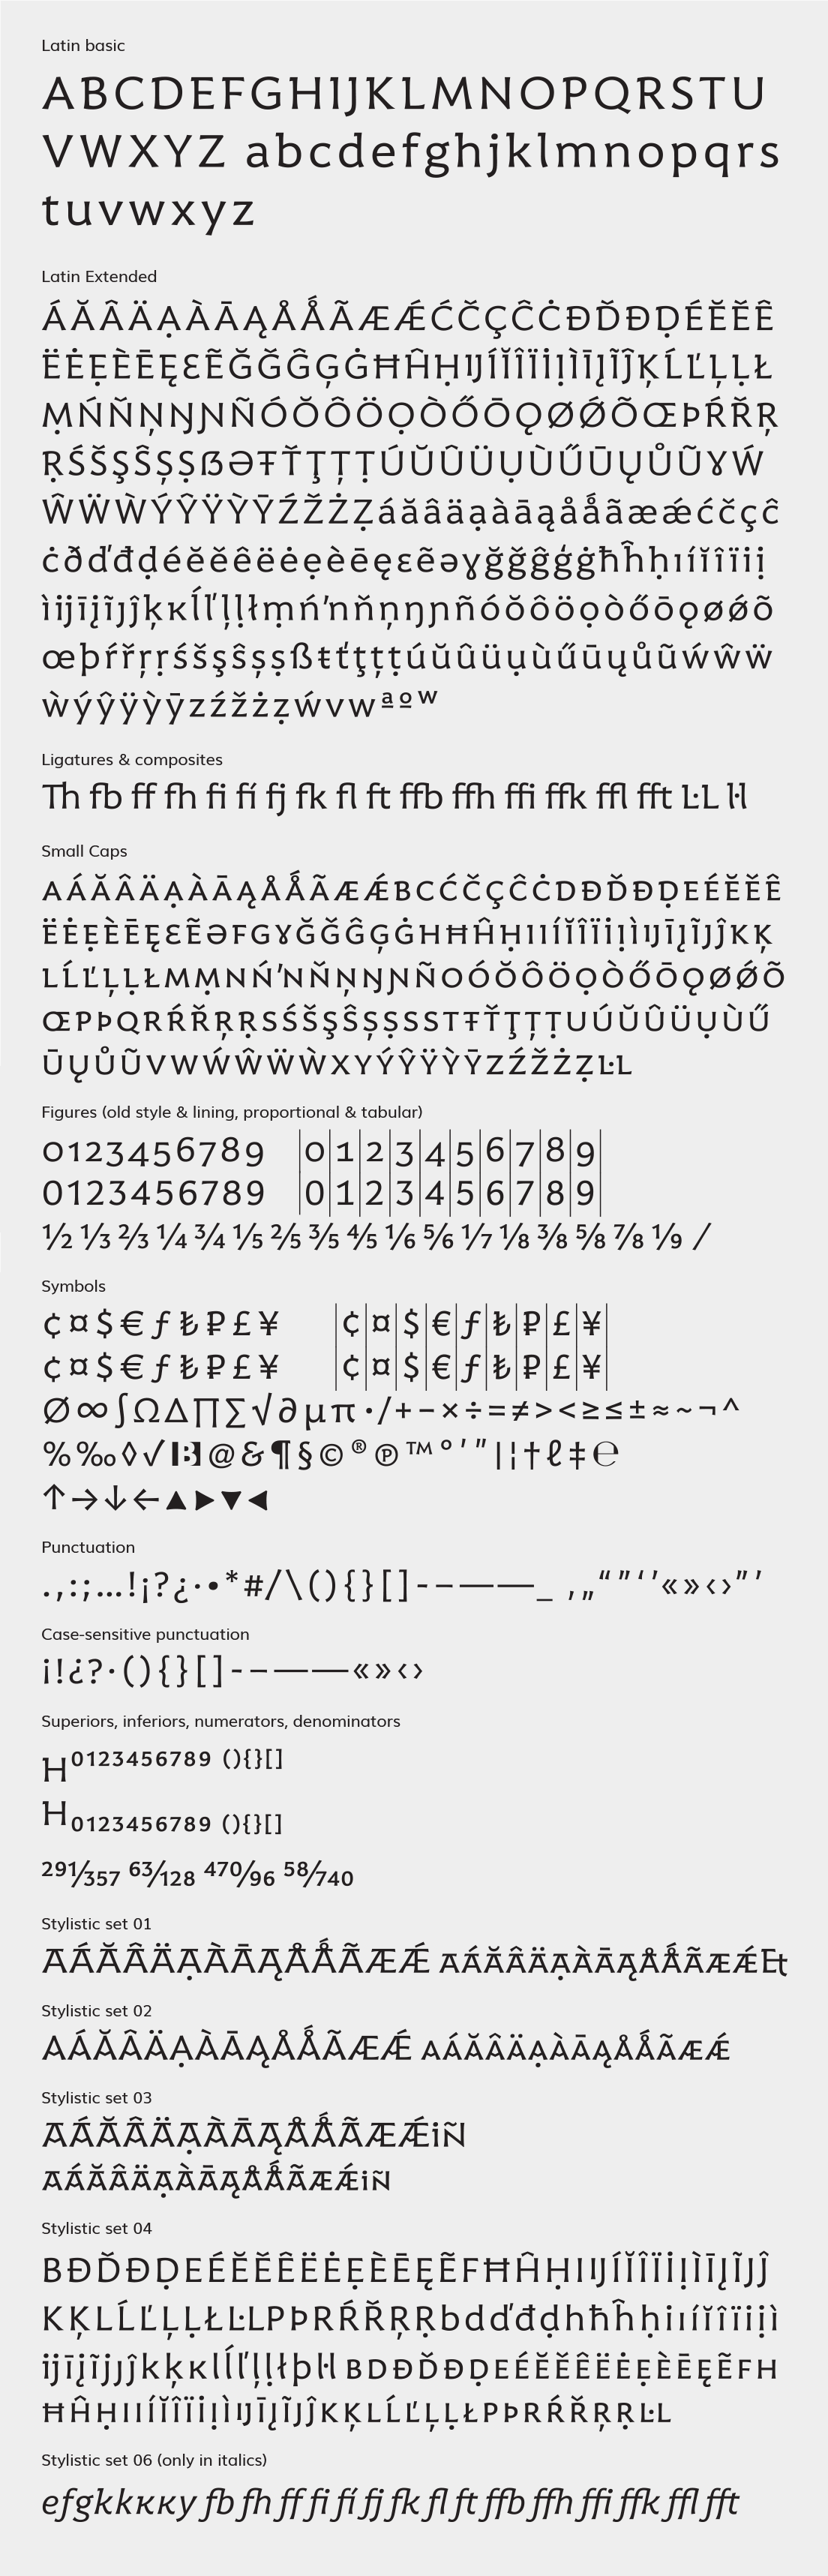 Harri Text: character set